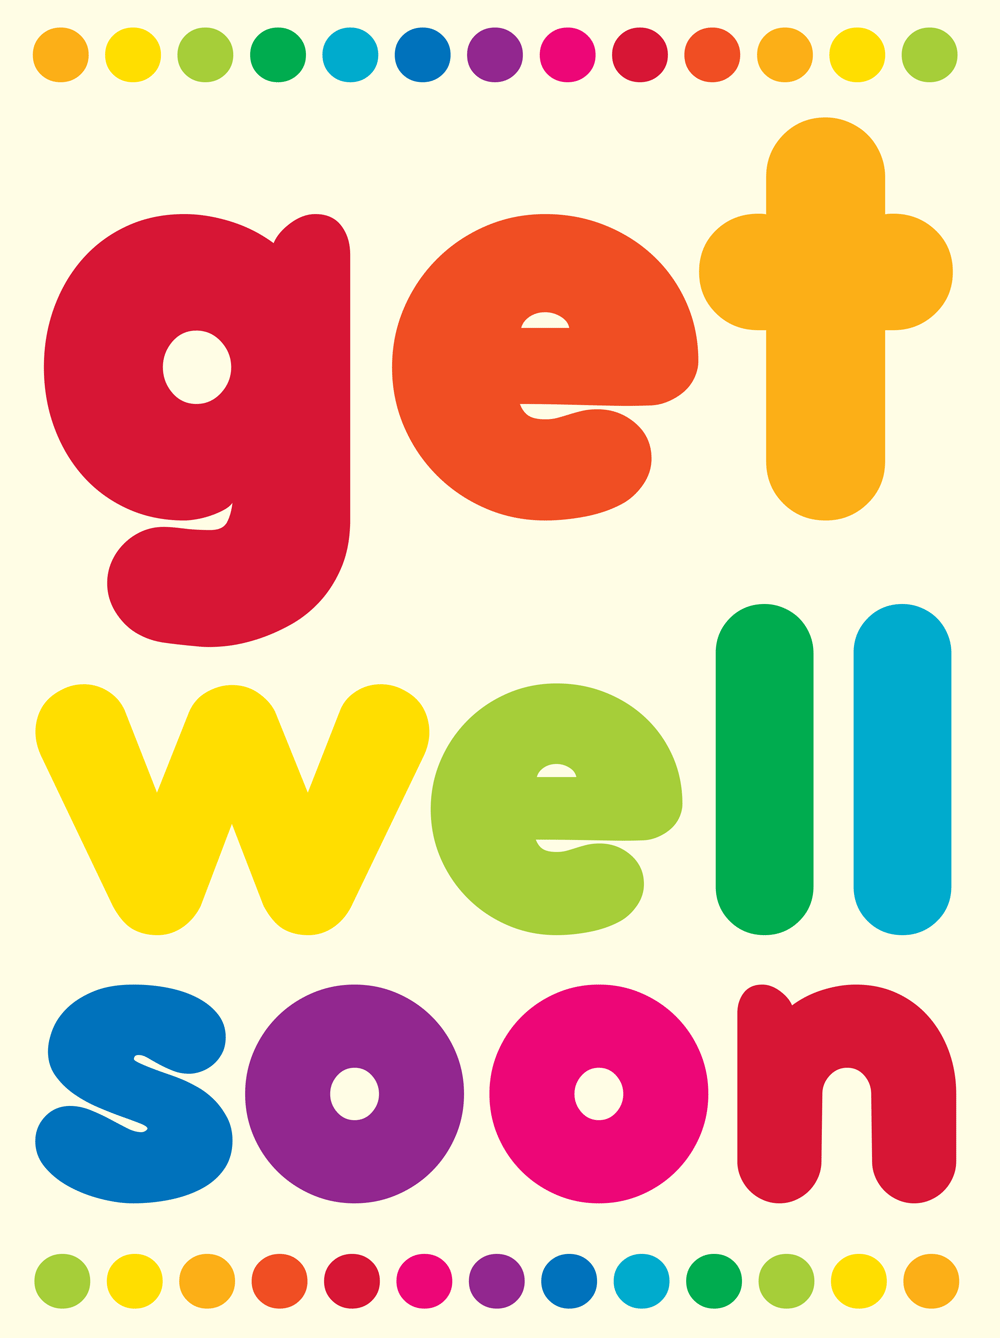 Get well soon pictures images graphics page 5 for Well pictures